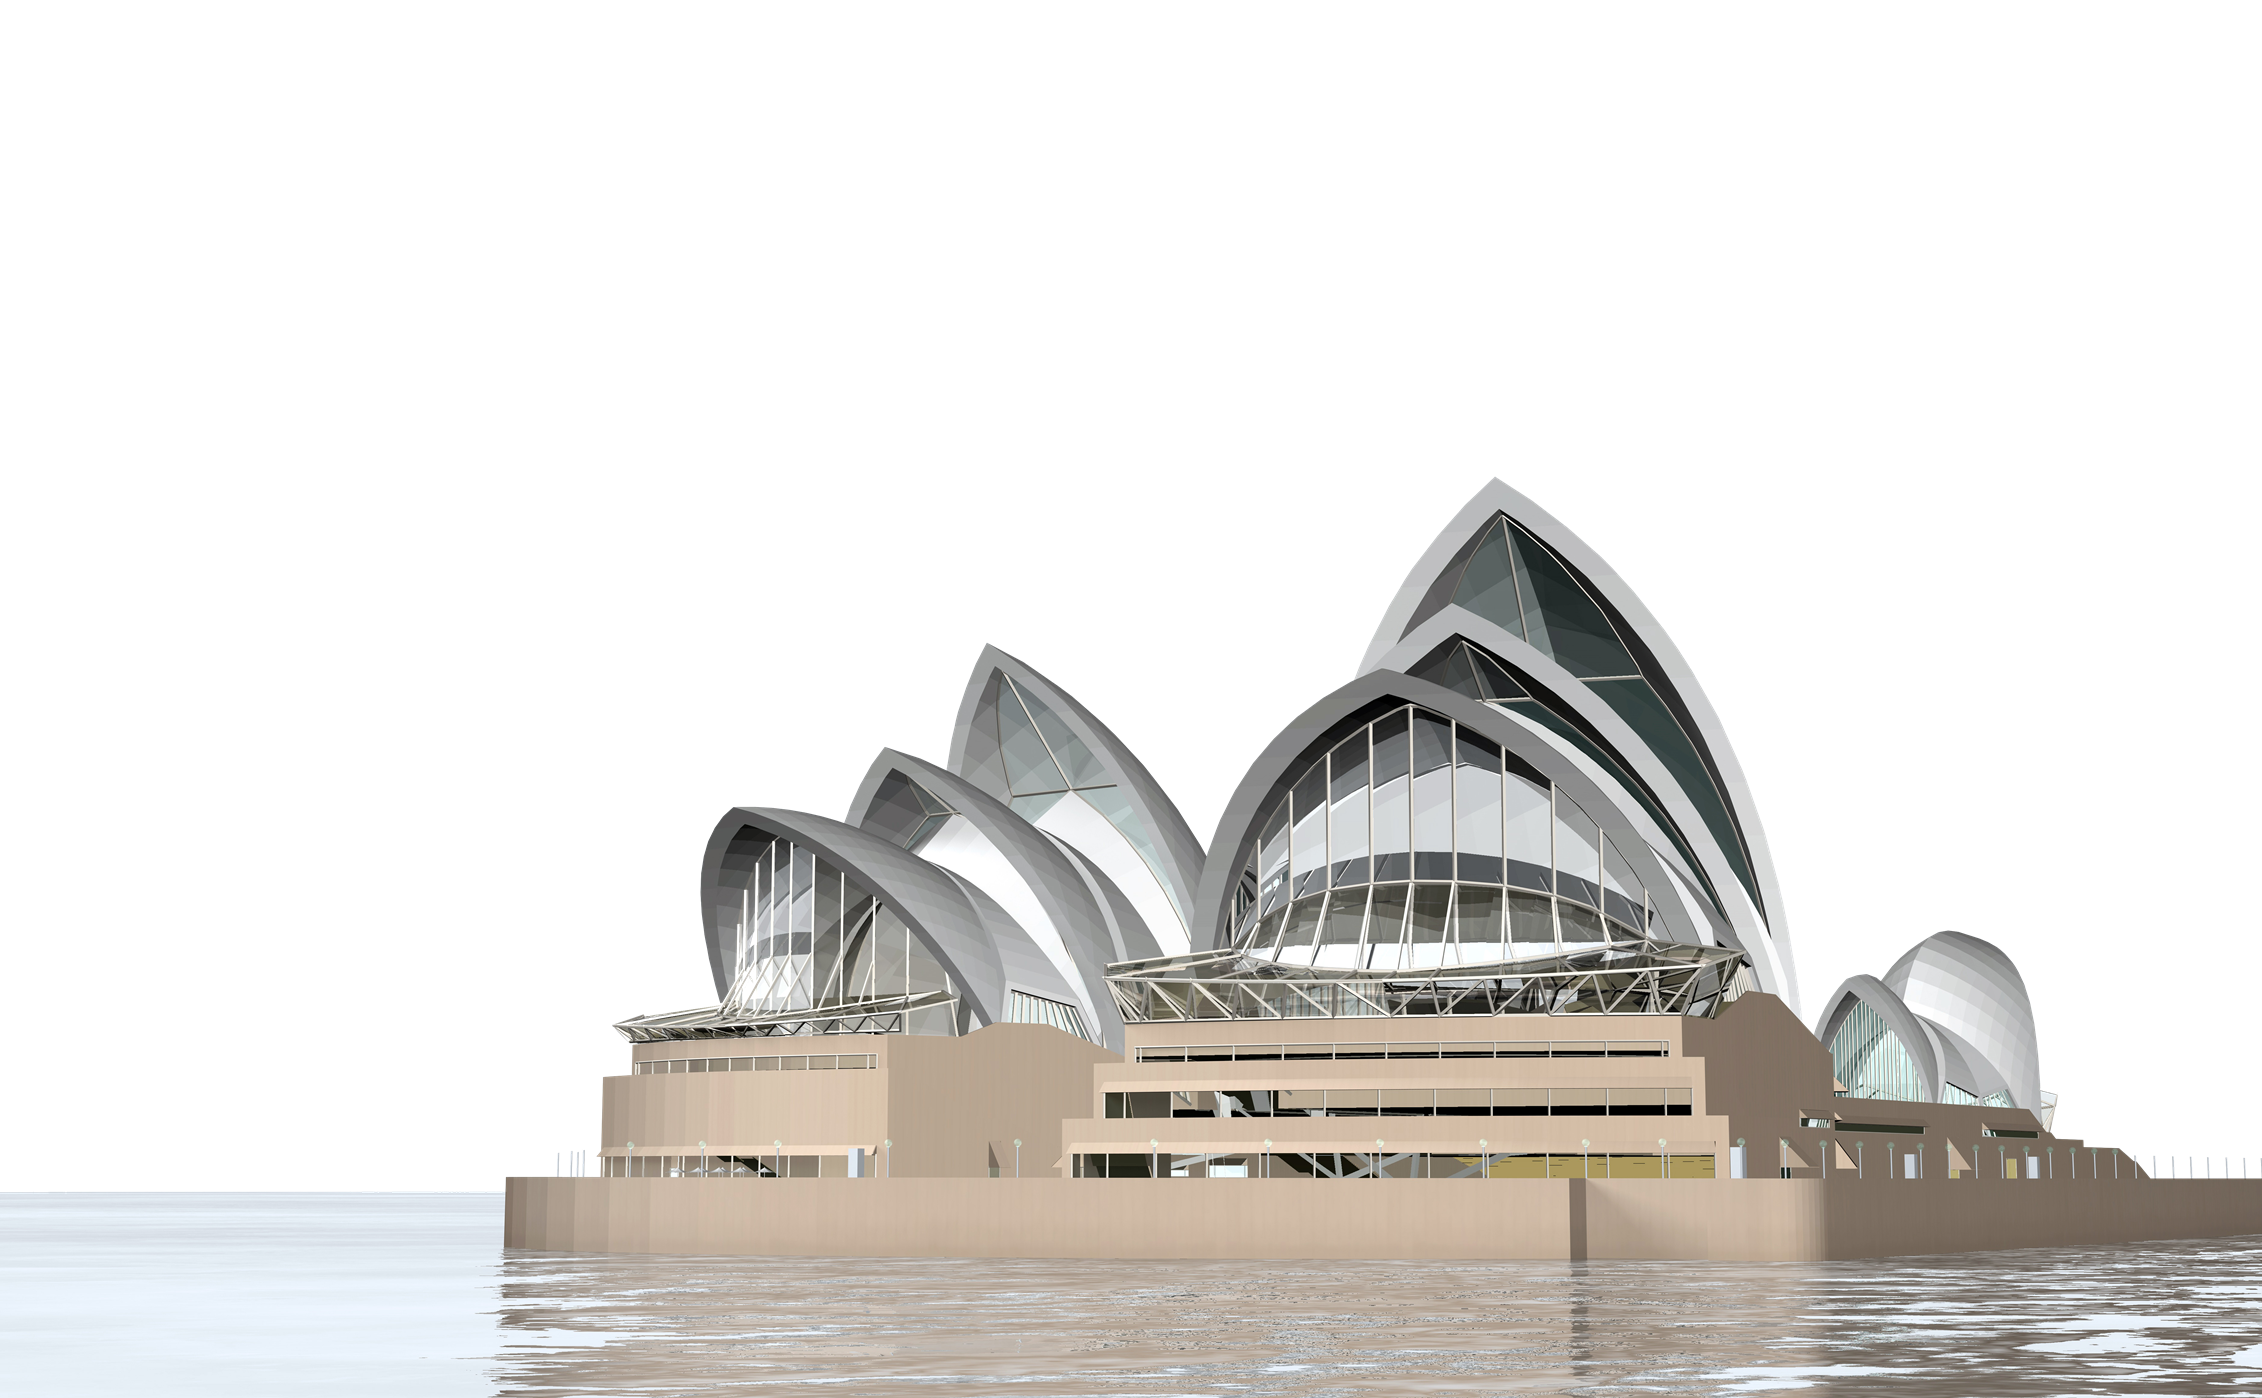 Opera house clipart banner download Sydney Opera House PNG Transparent Image | PNG Mart banner download